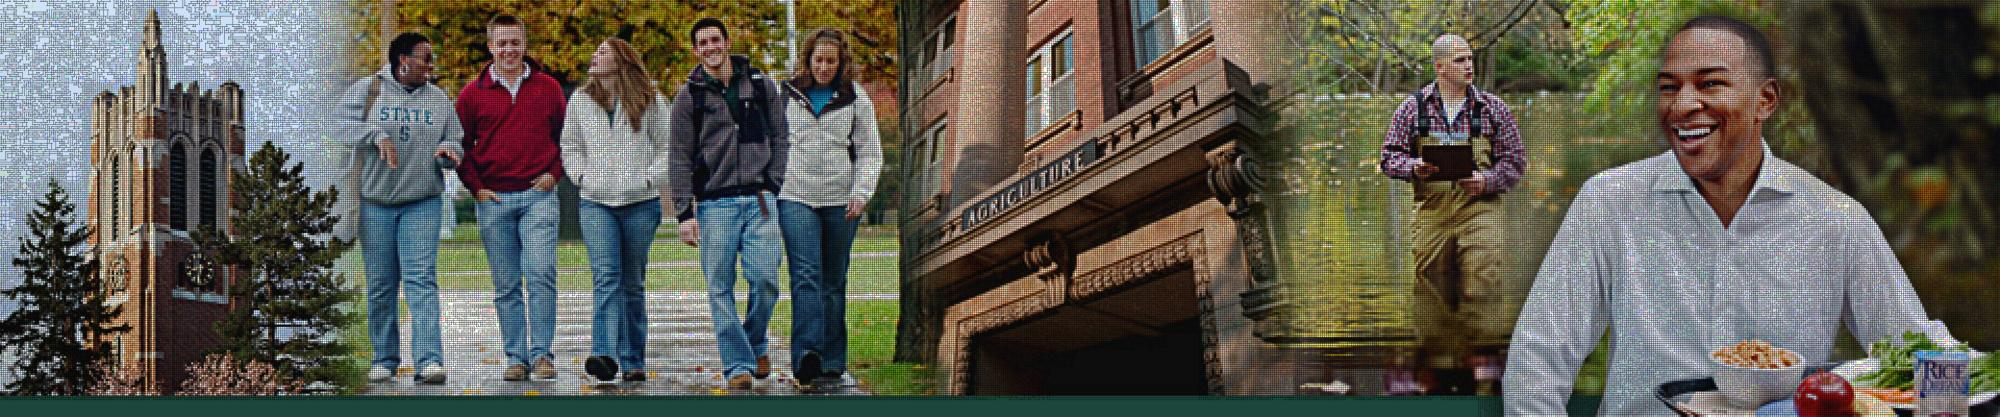 Images of people at michigan state university.